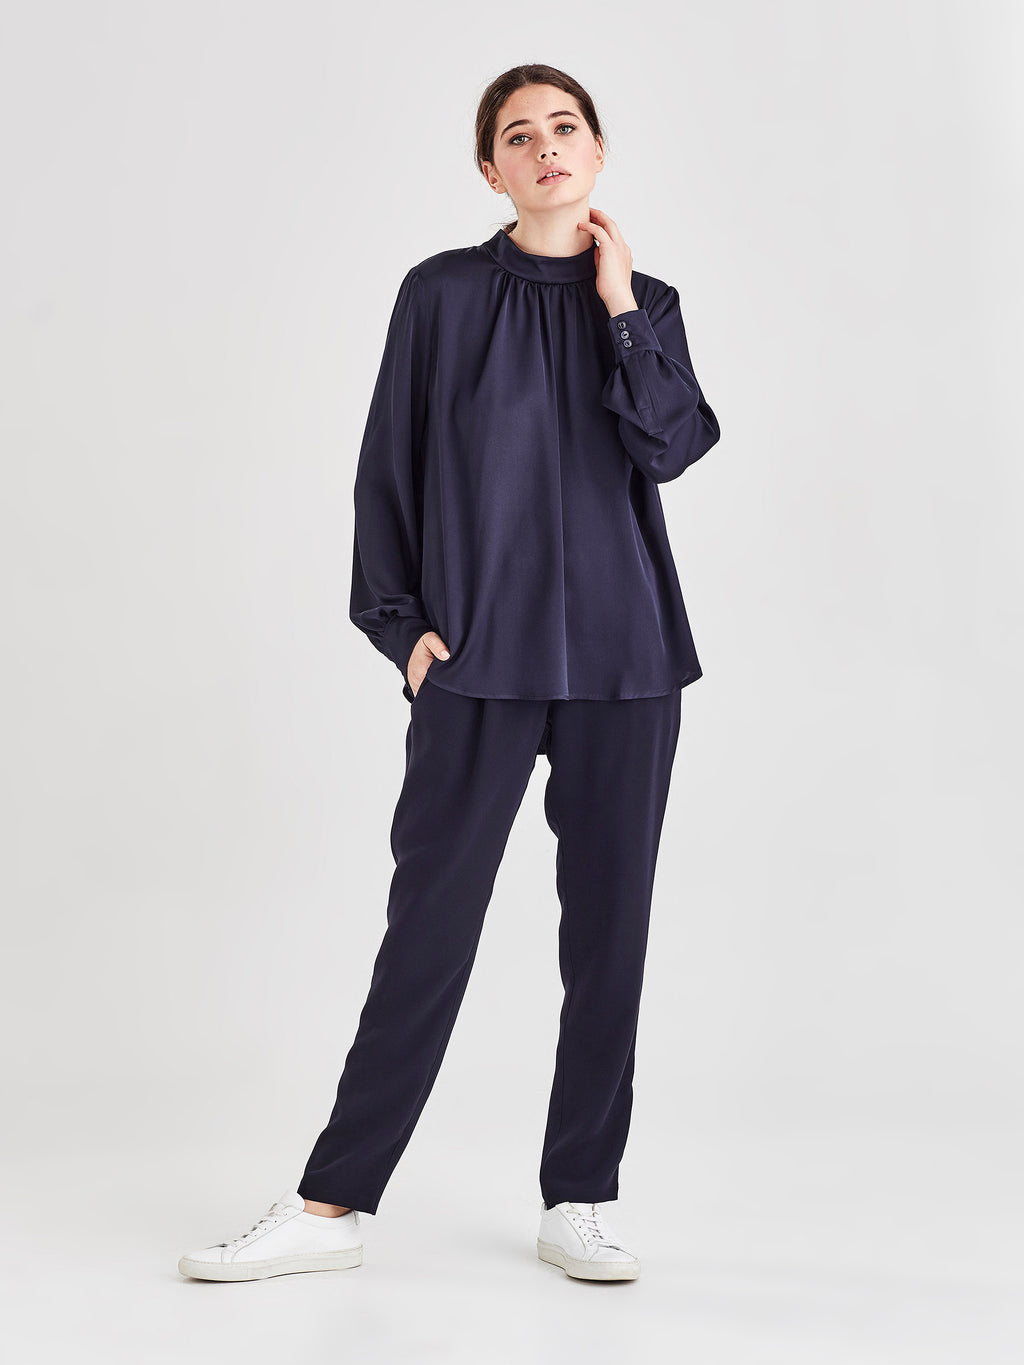 Alice Blouse (Silky) Navy